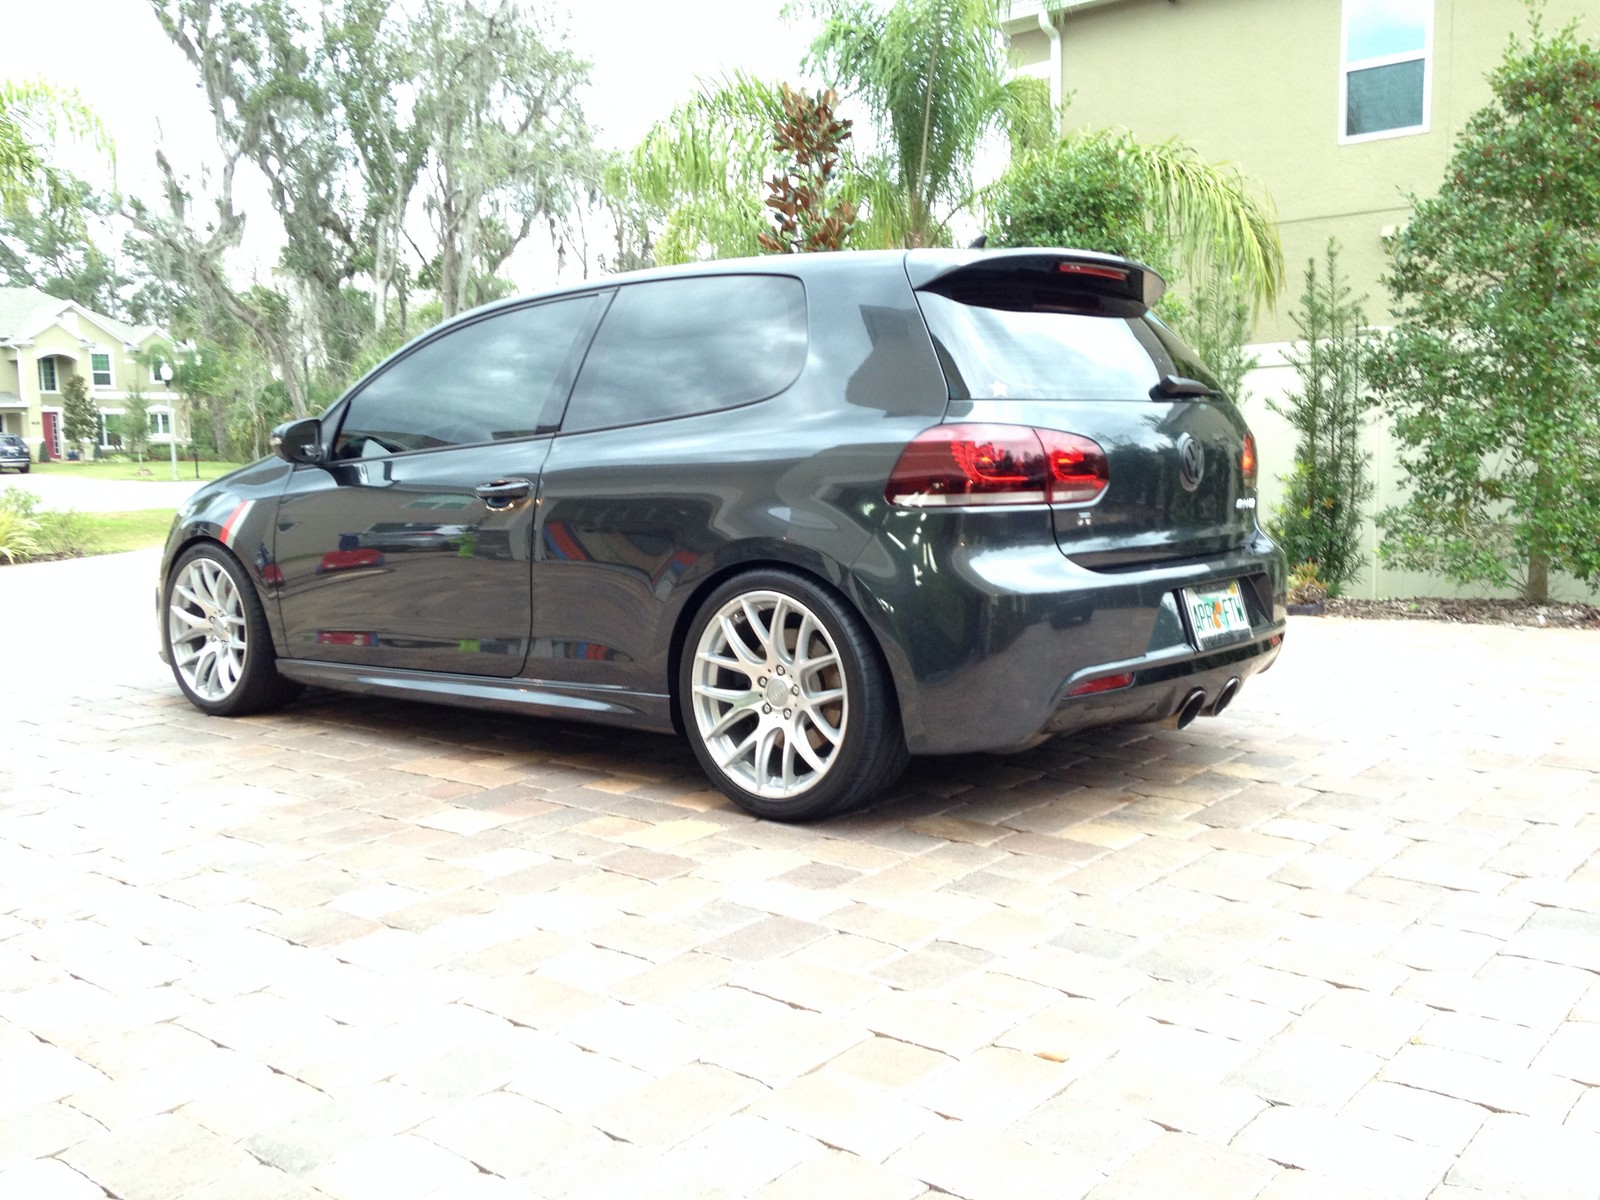 Carbon Steel Gray 2012 Volkswagen Golf R